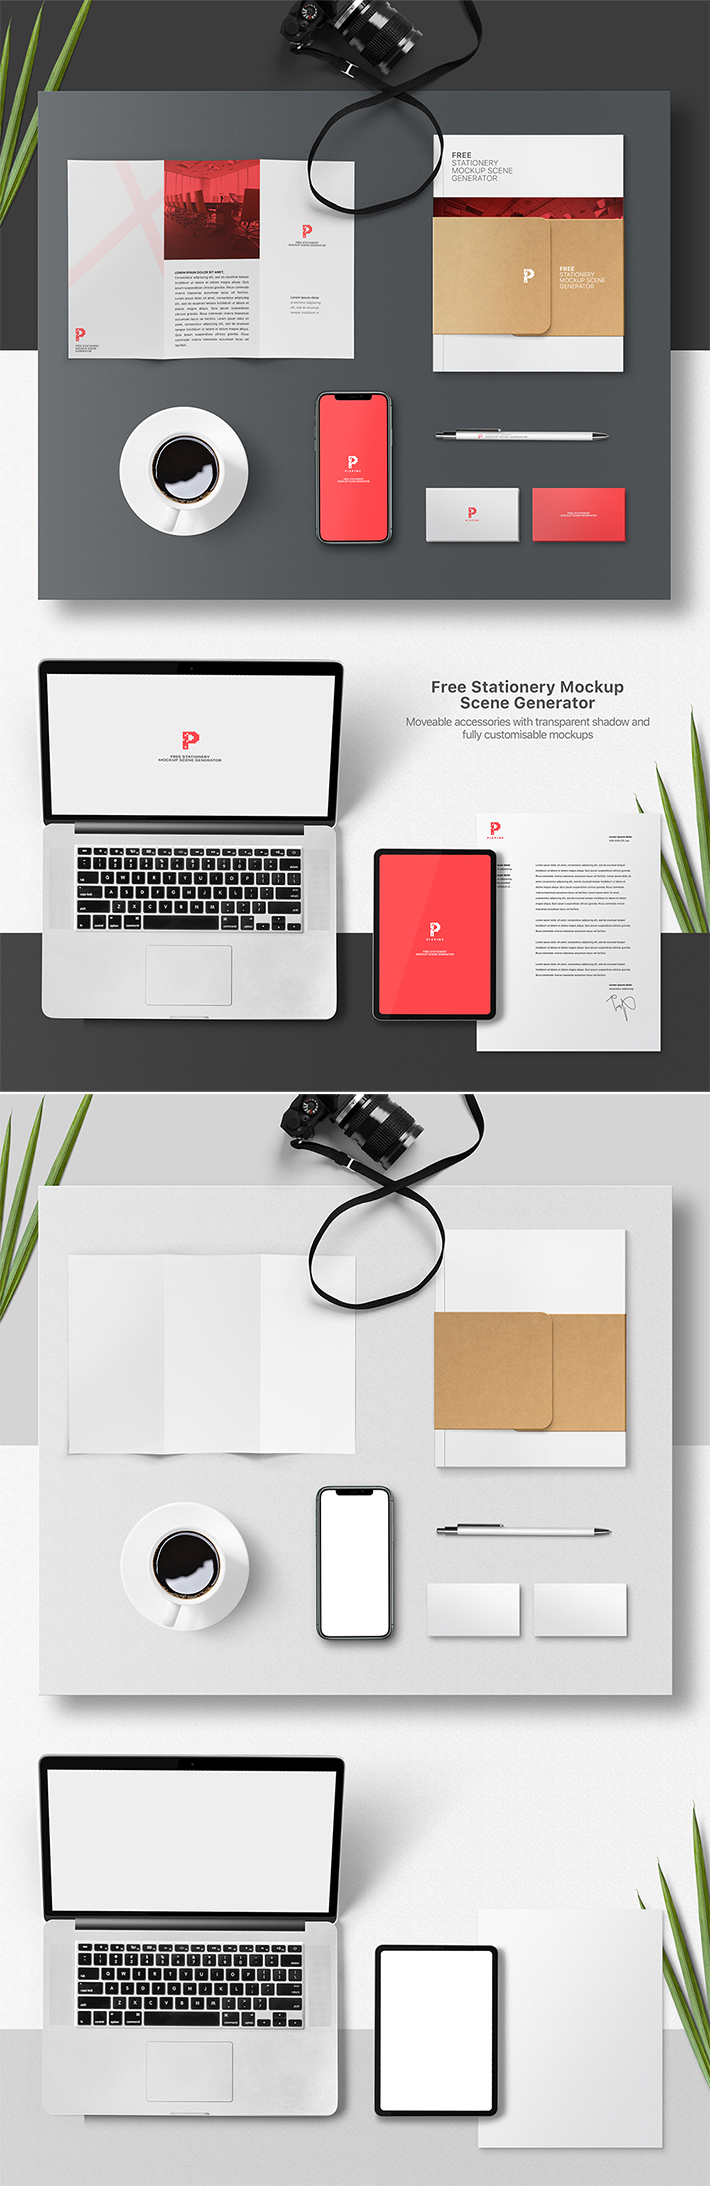 Awesome Branding Stationery Mockup